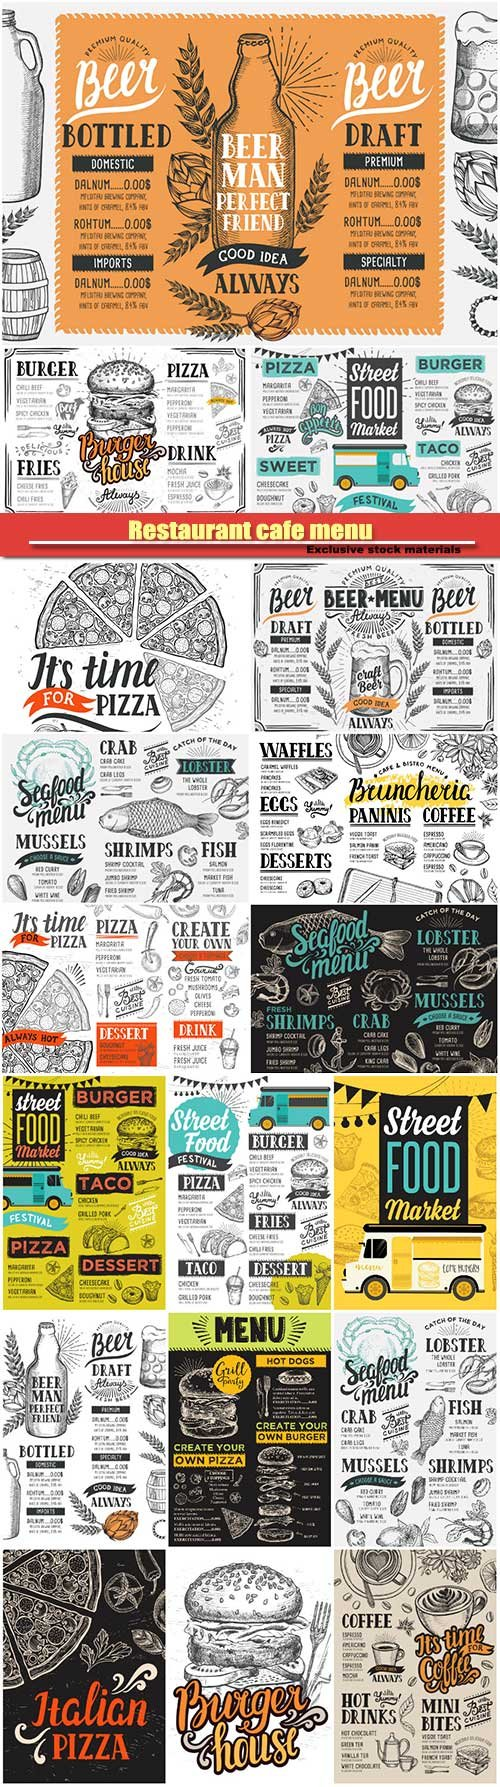 Restaurant cafe menu, vector template design